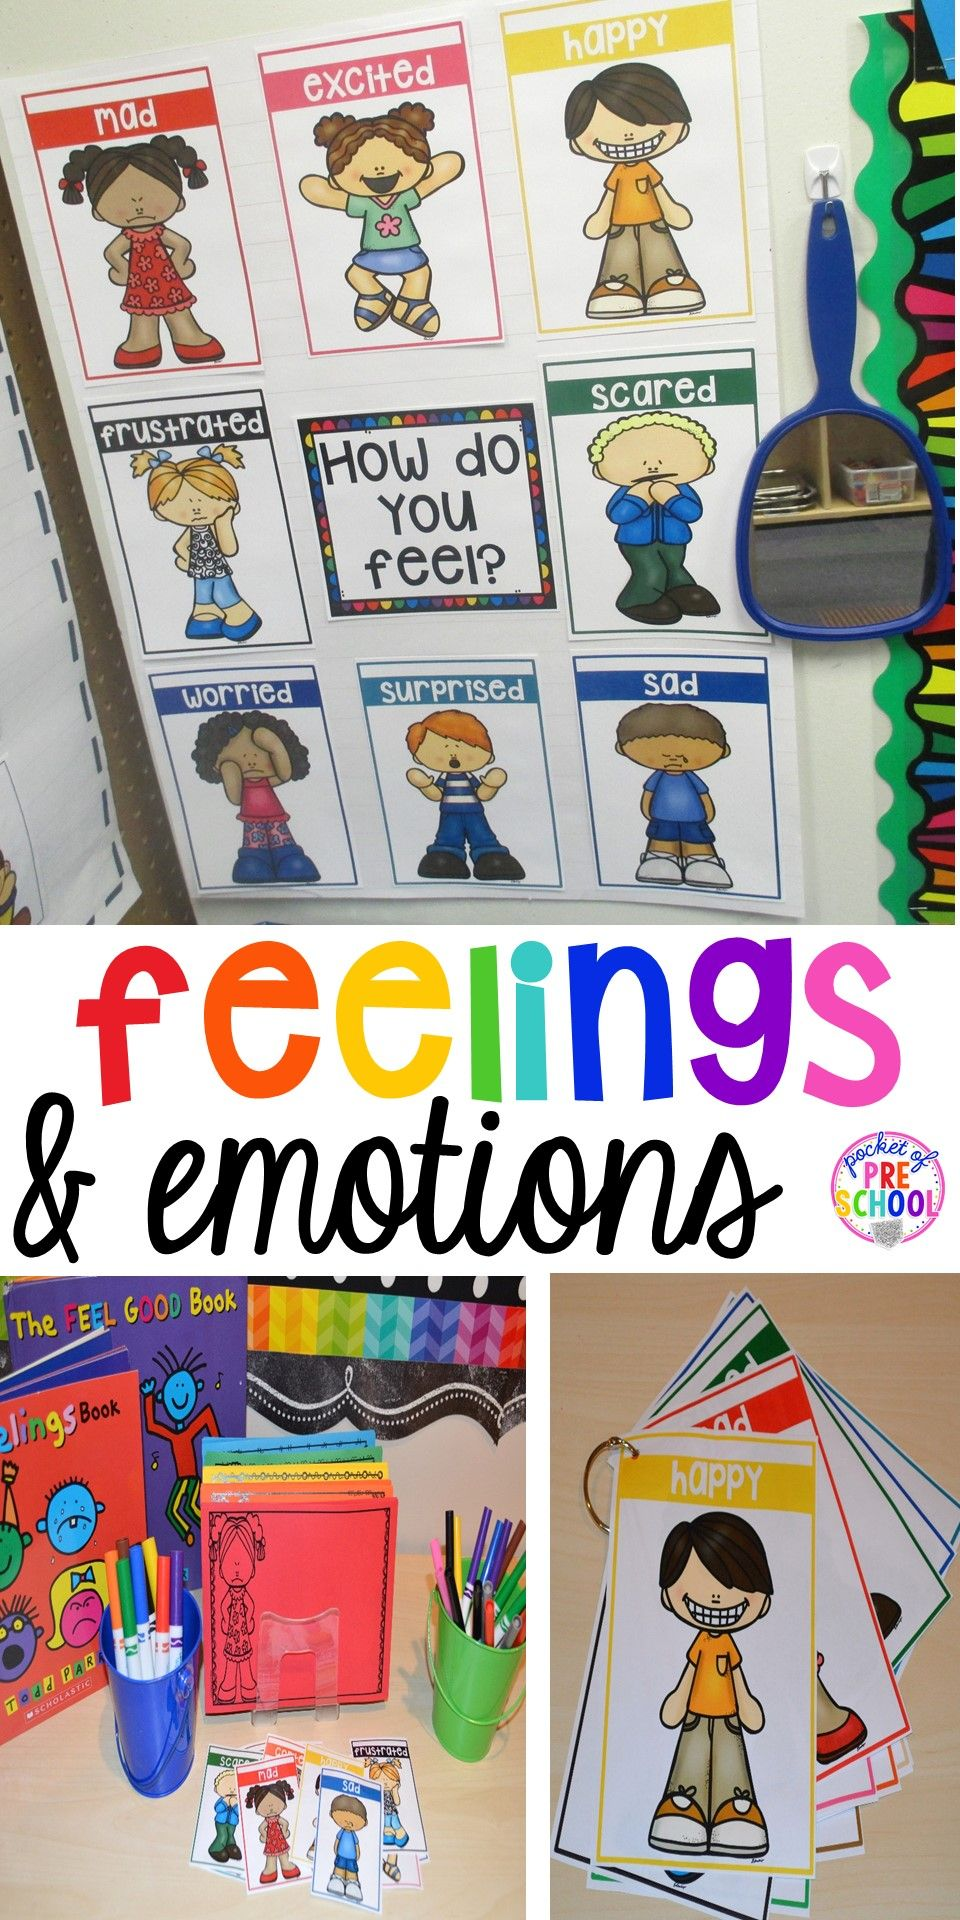 Feelings | LearnEnglish Kids - British Council